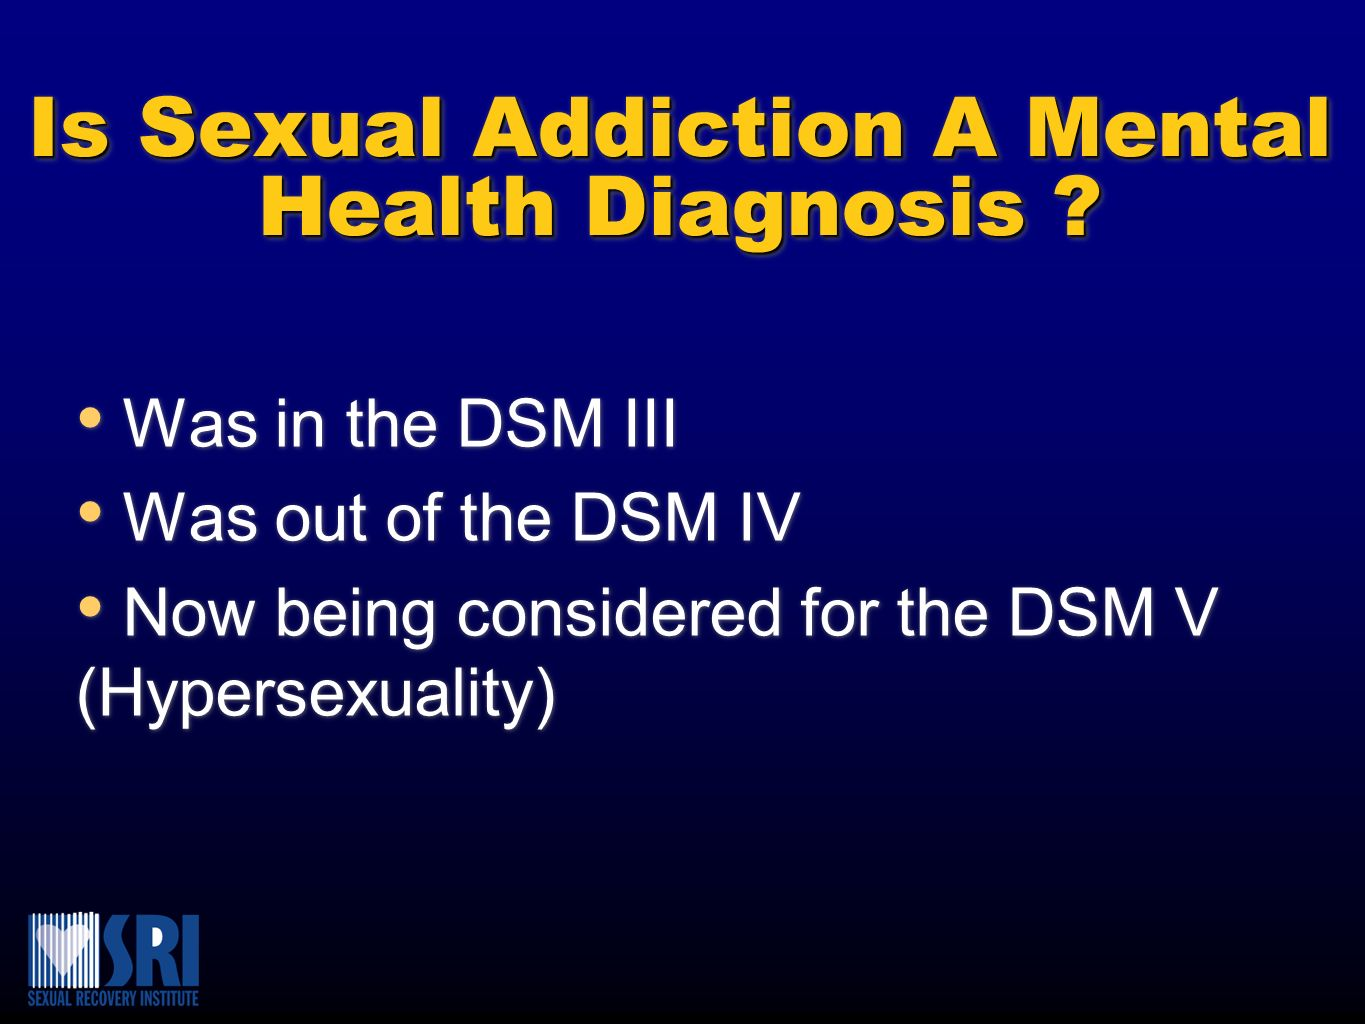 Is Sexual Addiction A Mental Health Diagnosis